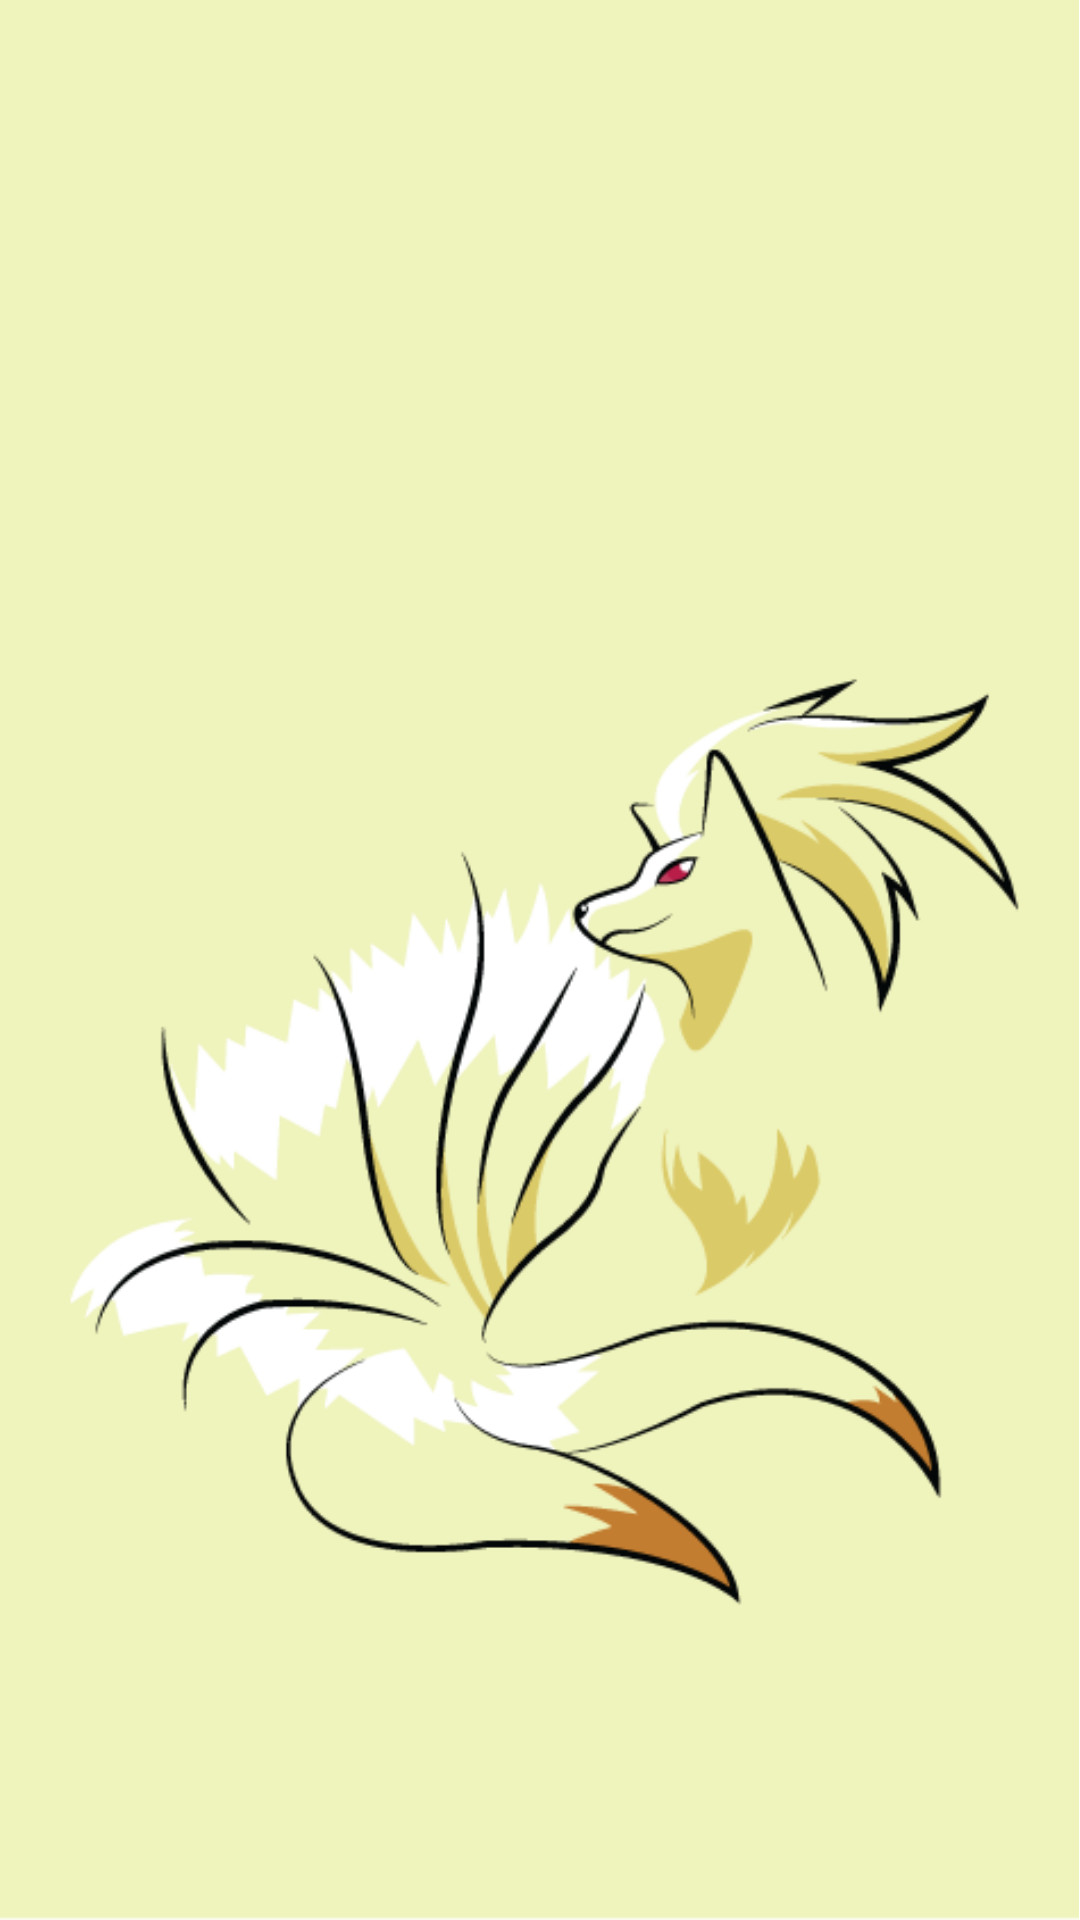 1080x1920 Download Ninetales 1080 x 1920 Wallpapers - 4674406 - POKEMON POKEMONGO  IPHONE CARTOON GAMES | mobile9